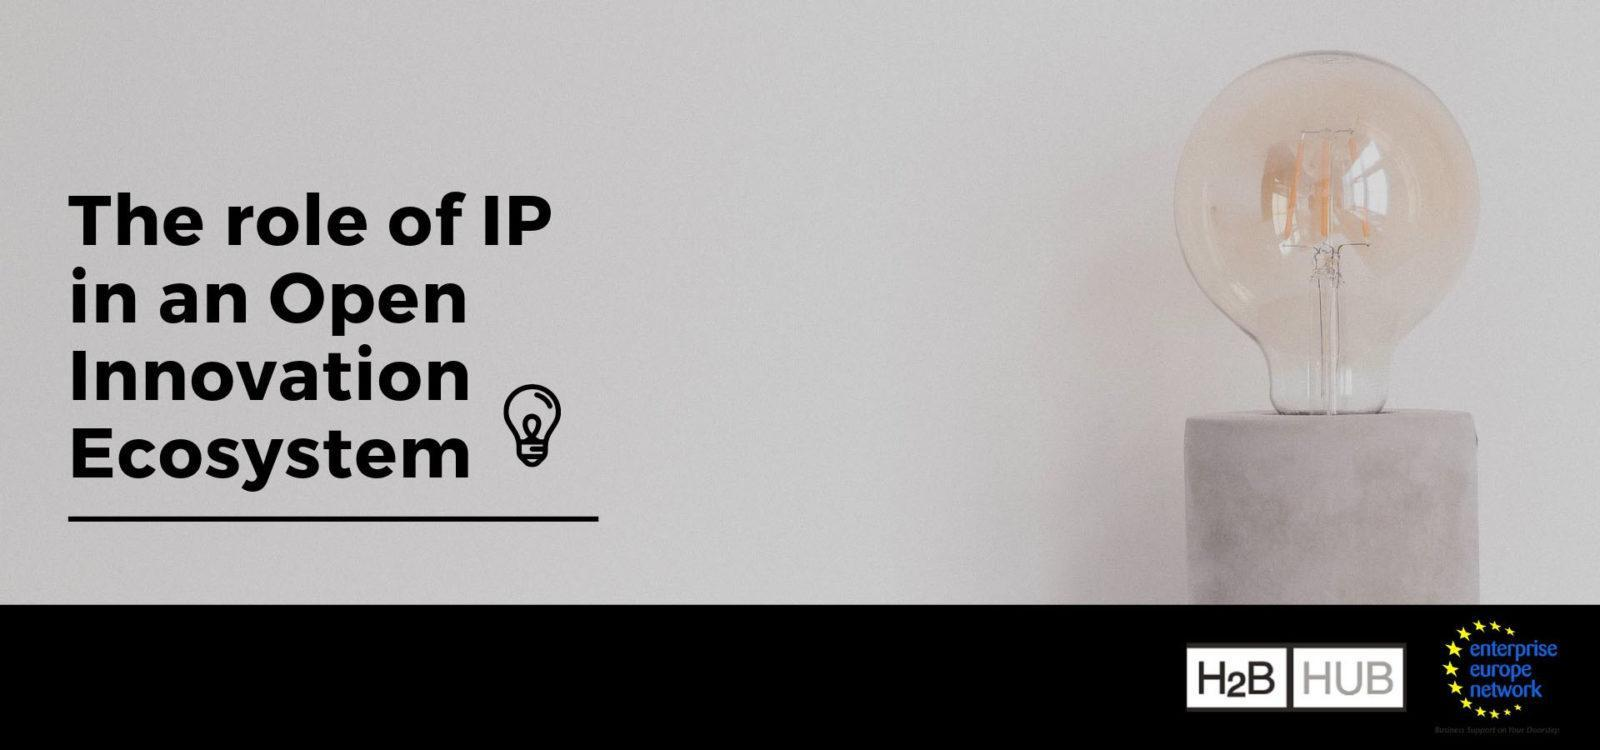 The role of IP in an Open Innovation Ecosystem   Heraklion 2019